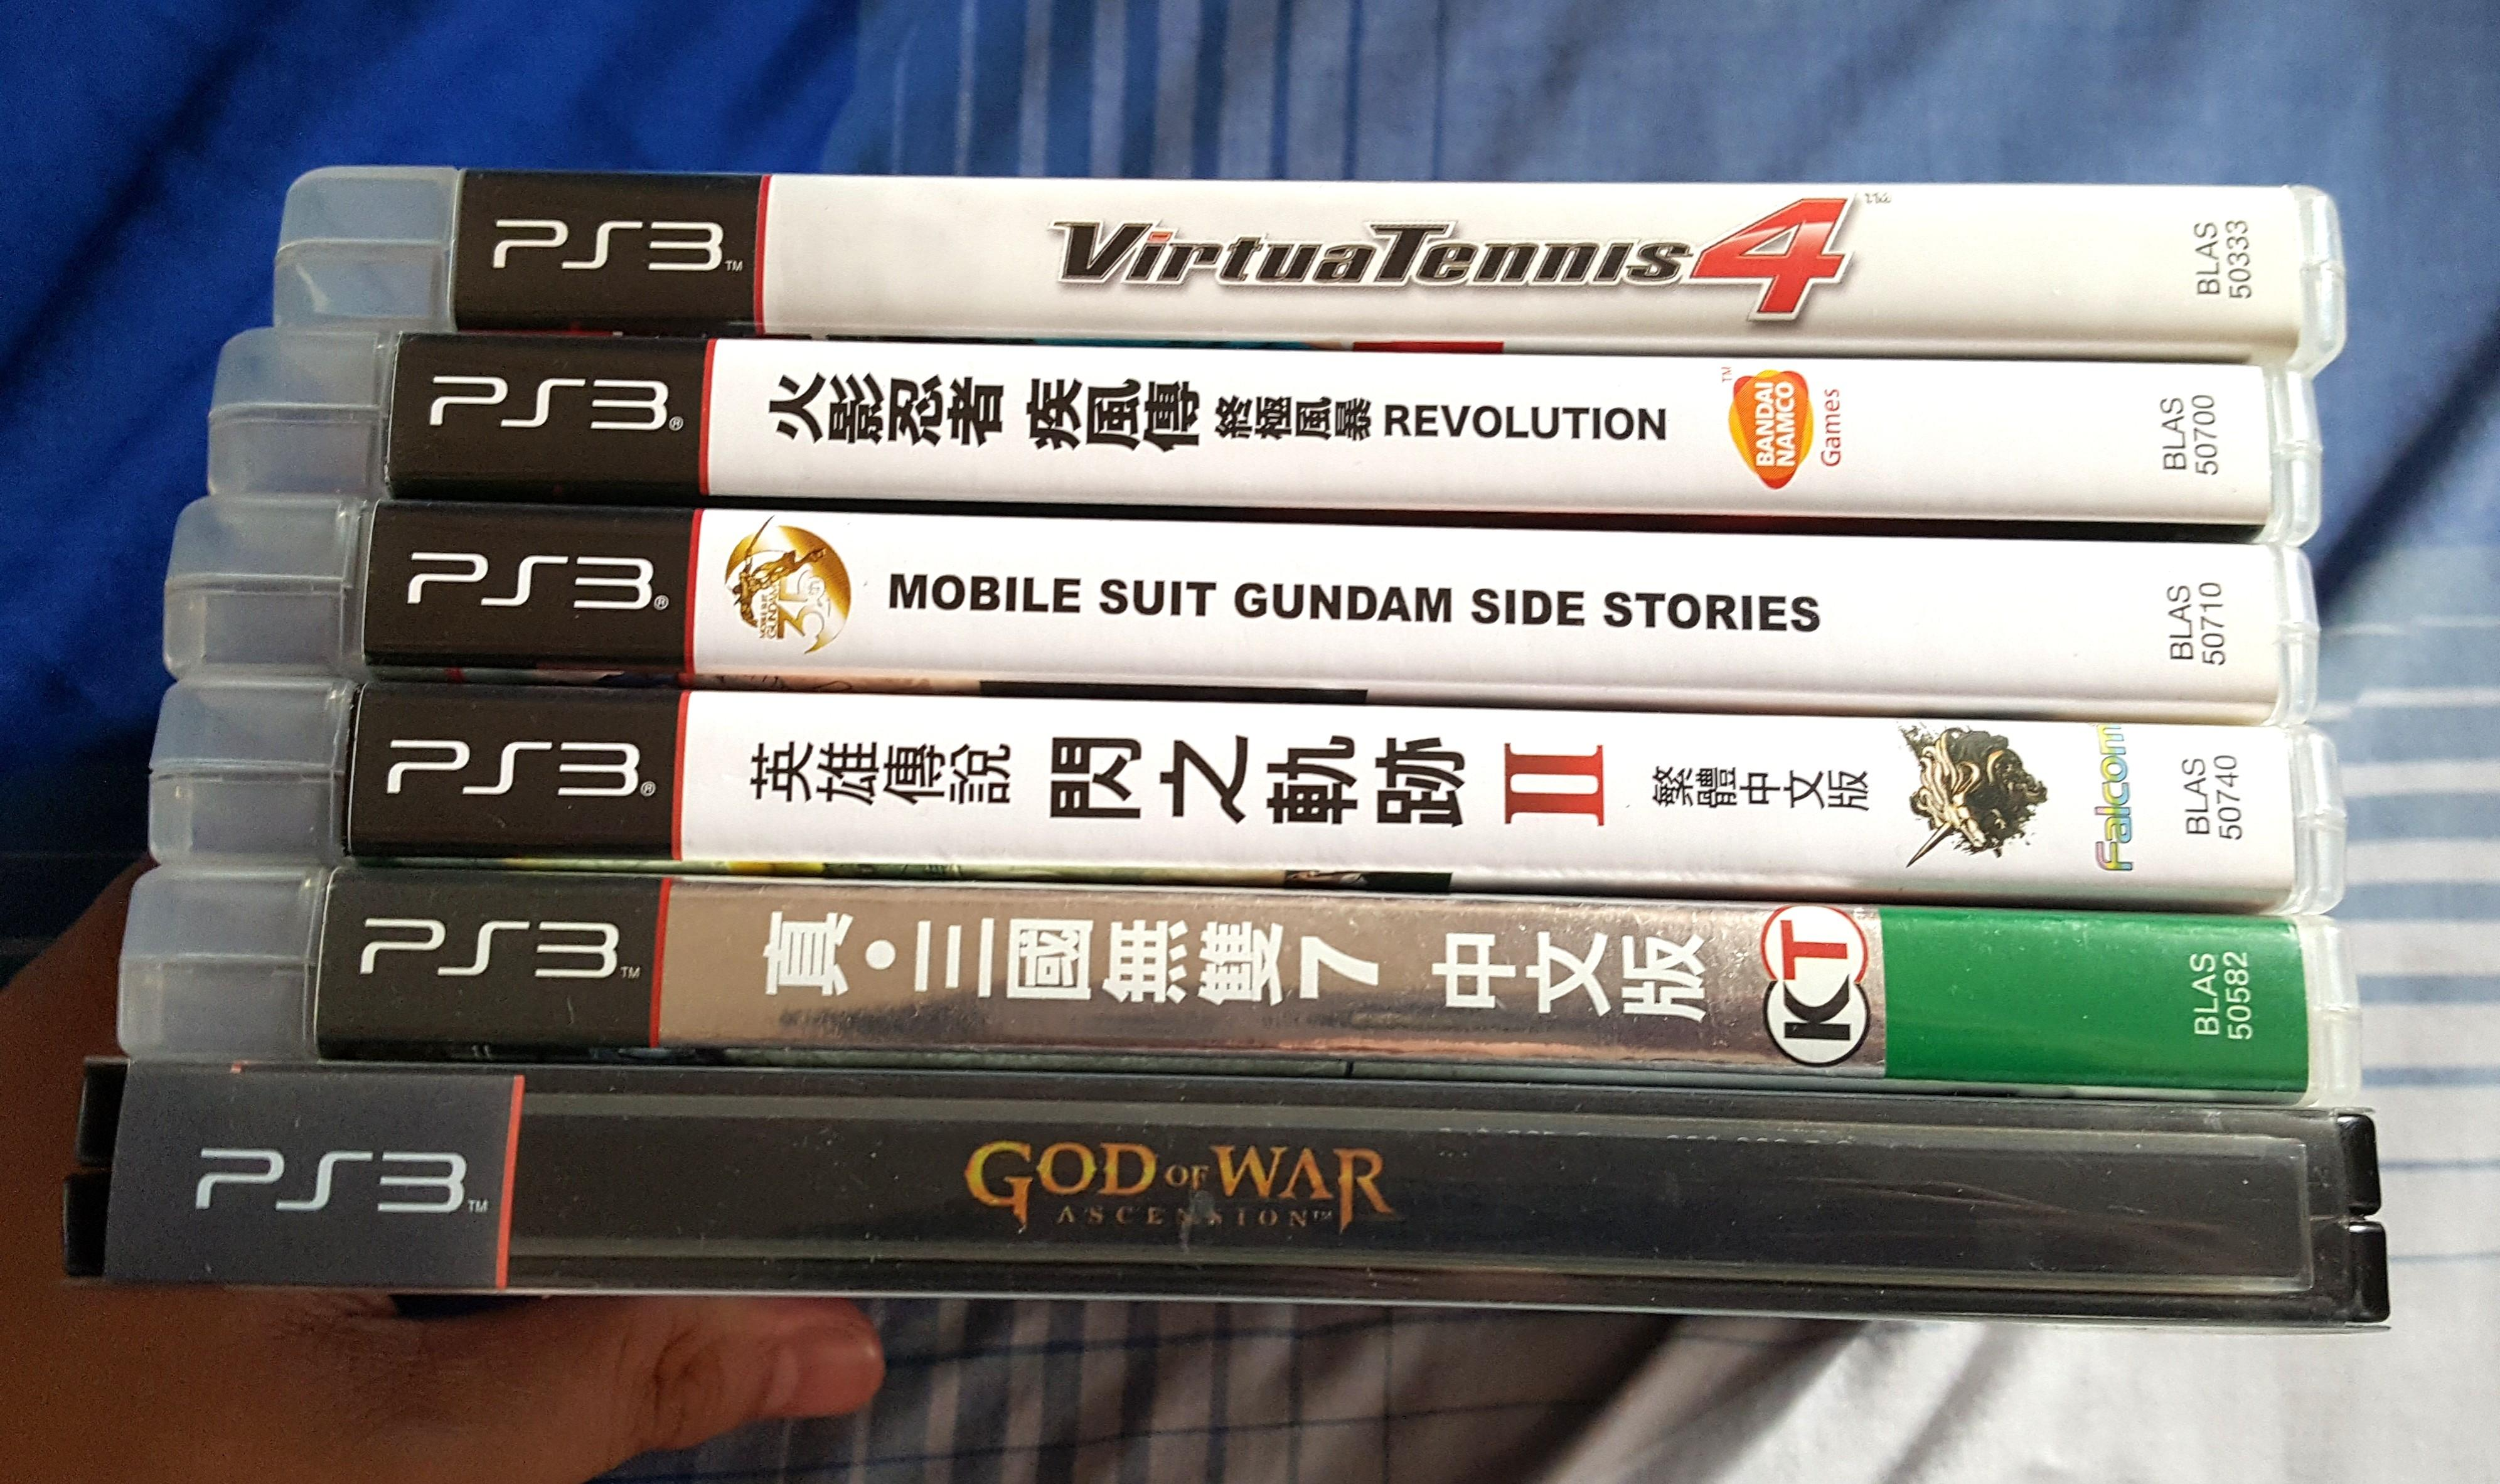 PS3 Games,$200 For All 6 Games!. Buy ONLY 1 Game $80!